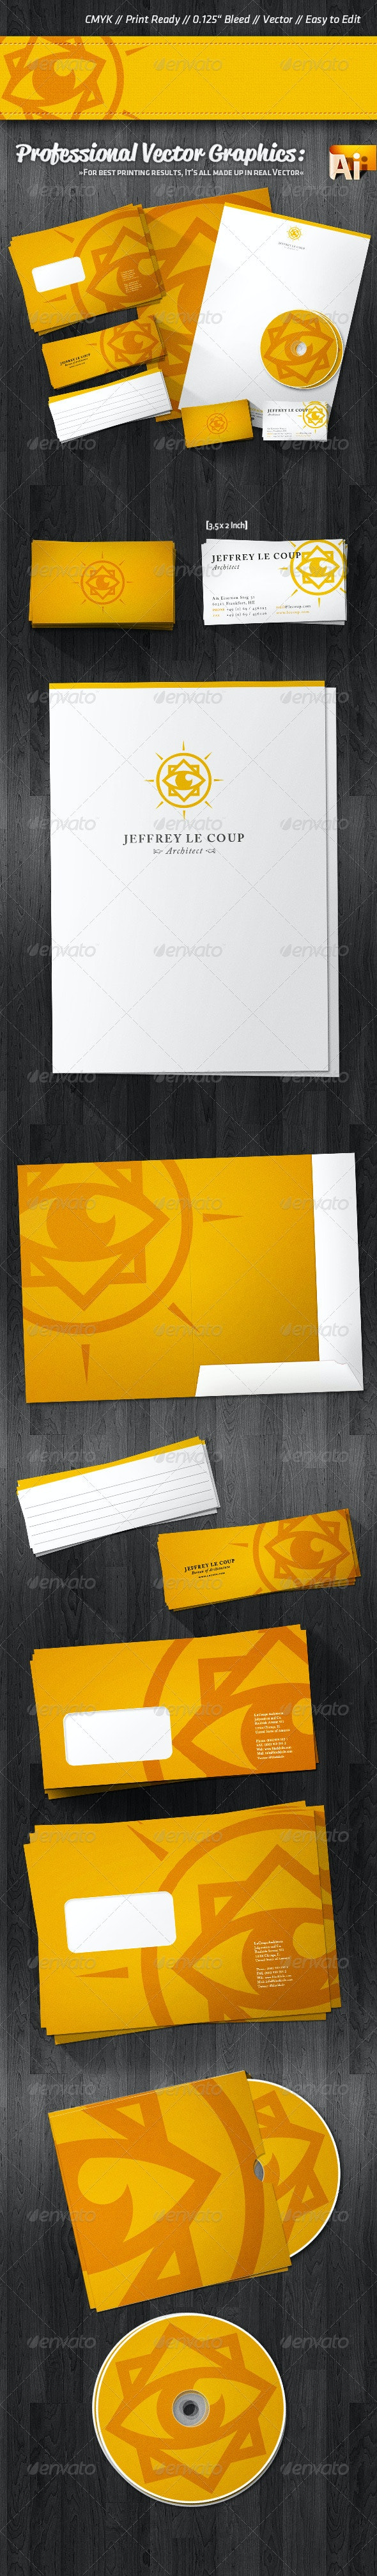 Professional Clean Corporate Identity Package - Stationery Print Templates